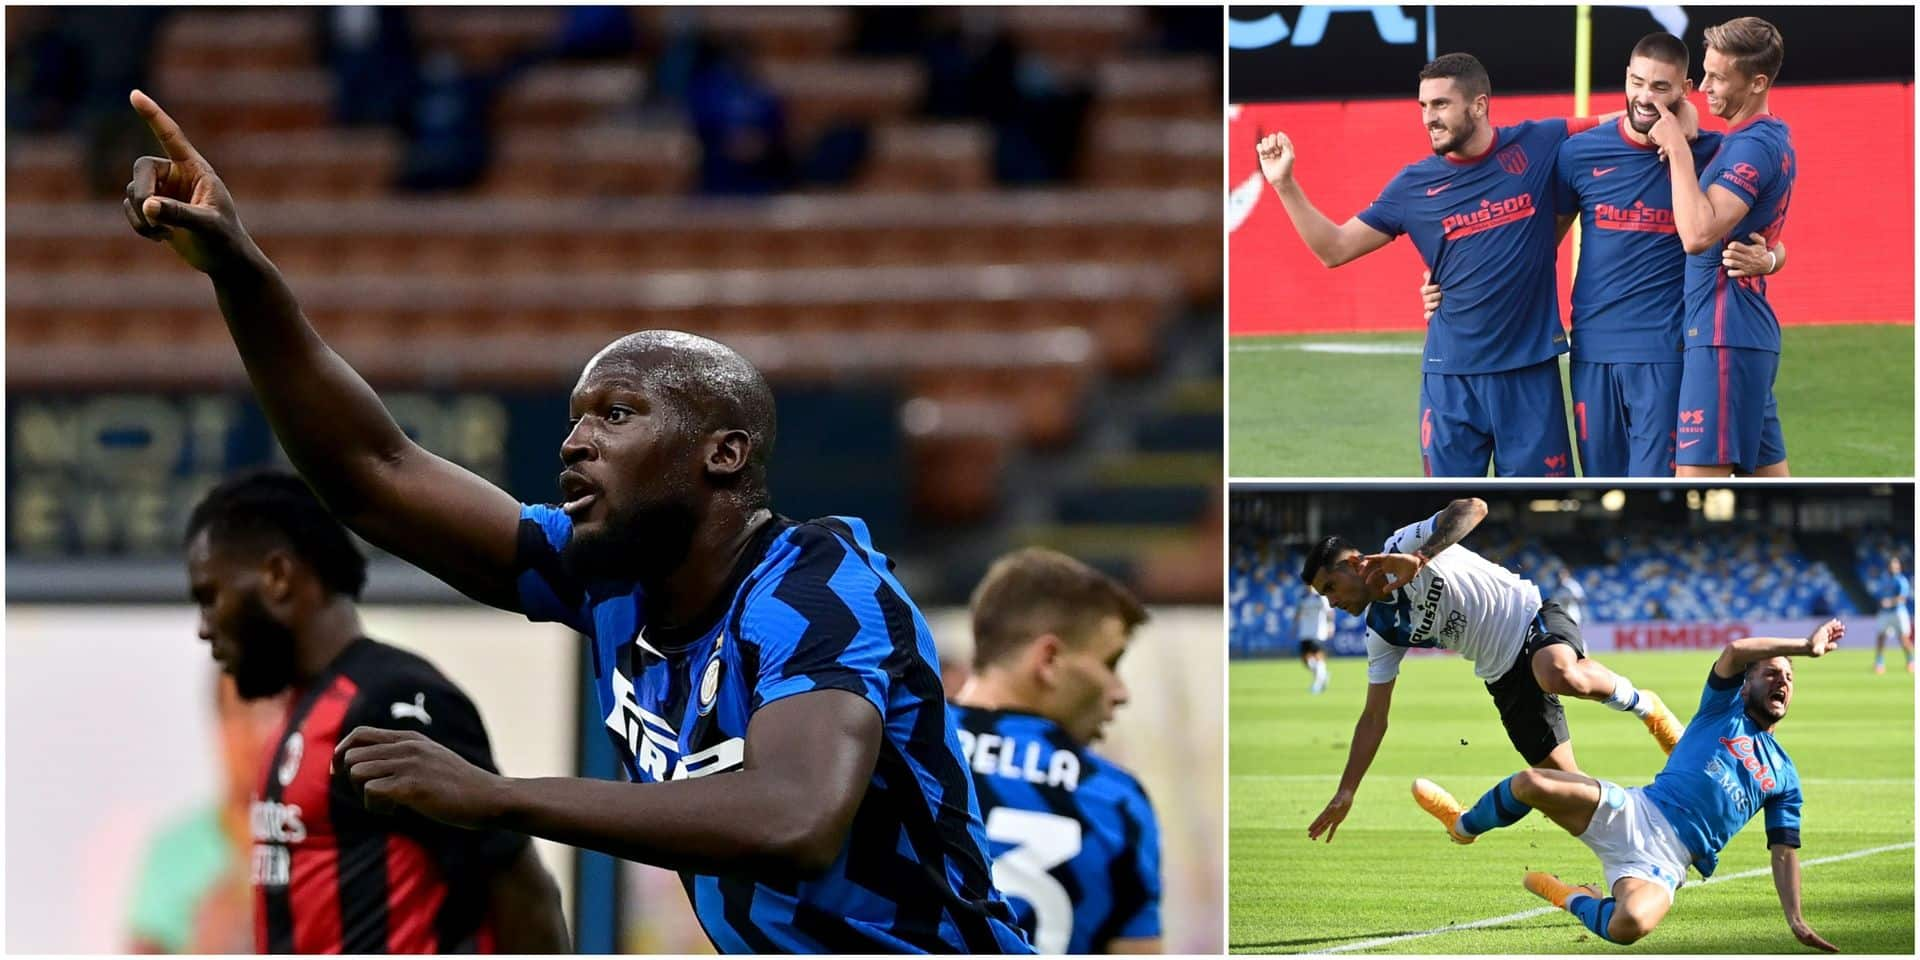 Belges à l'étranger: Carrasco buteur, Mertens à l'assist, nouveau but de Lukaku mais l'Inter perd le derby! (VIDEOS)